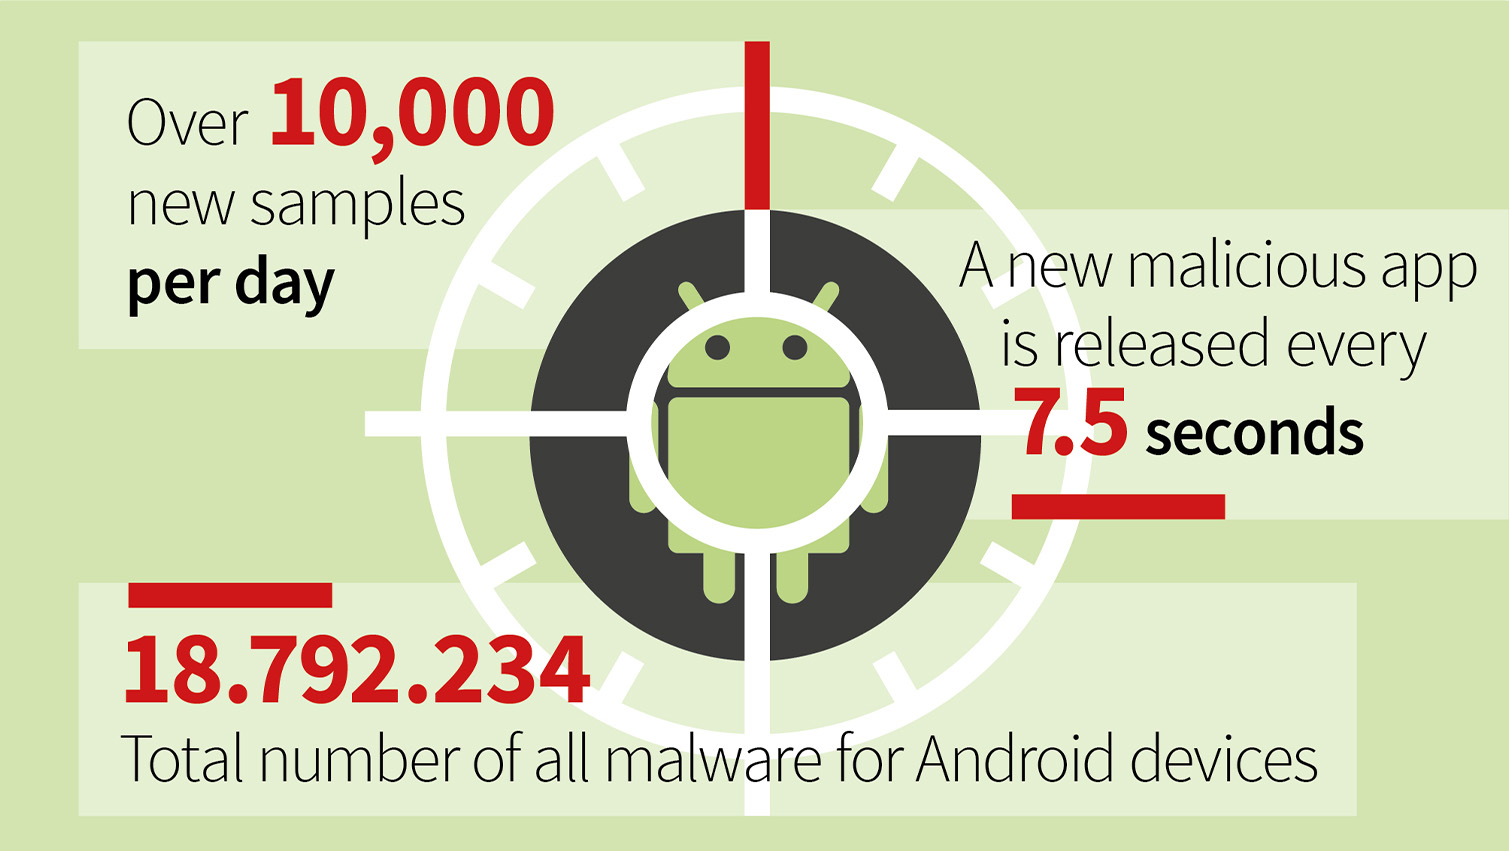 G DATA Infographic MMR 2019 Android Malware Numbers EN